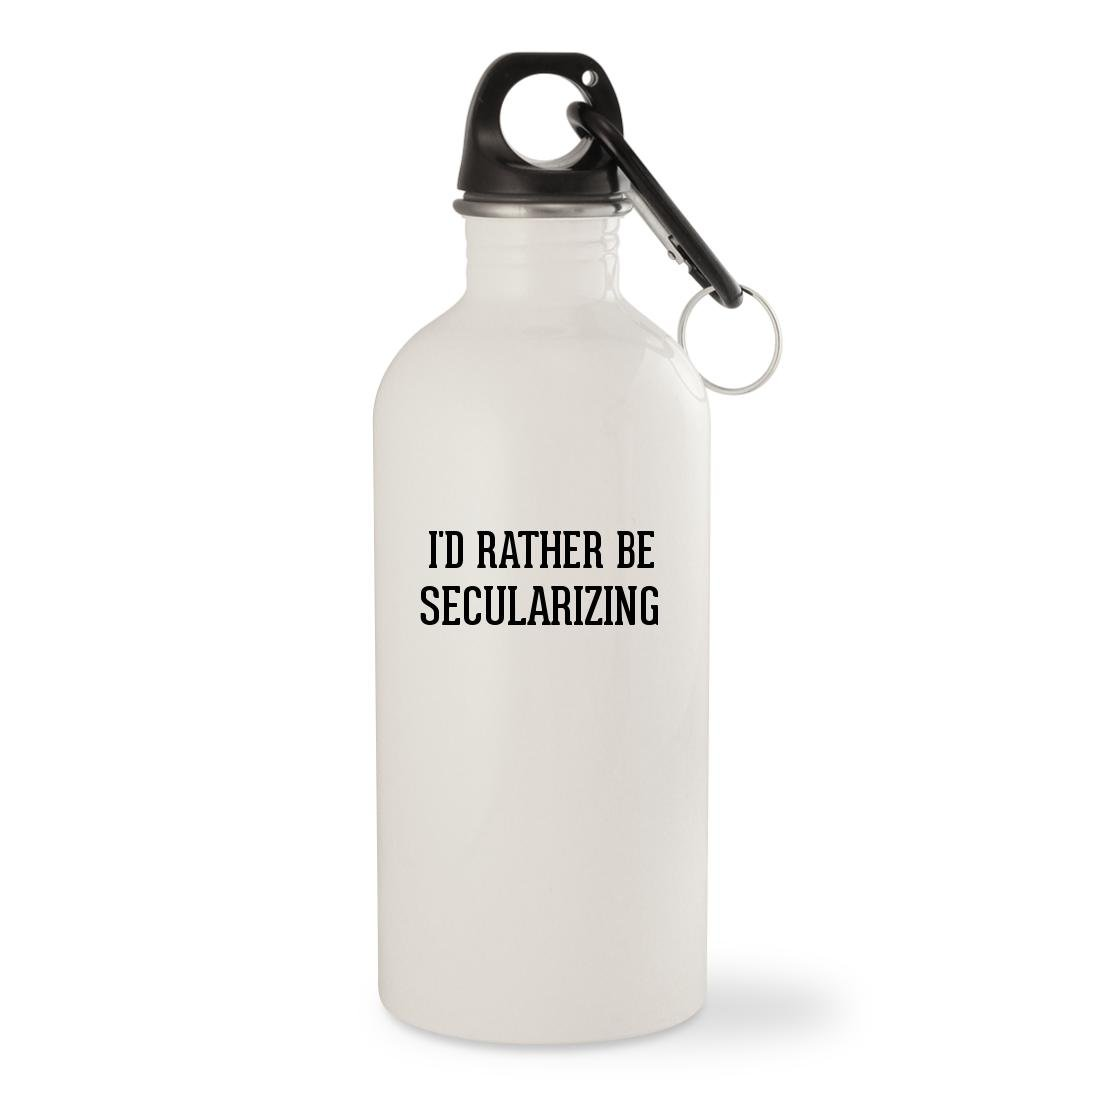 I'd Rather Be SECULARIZING - White 20oz Stainless Steel Water Bottle with Carabiner